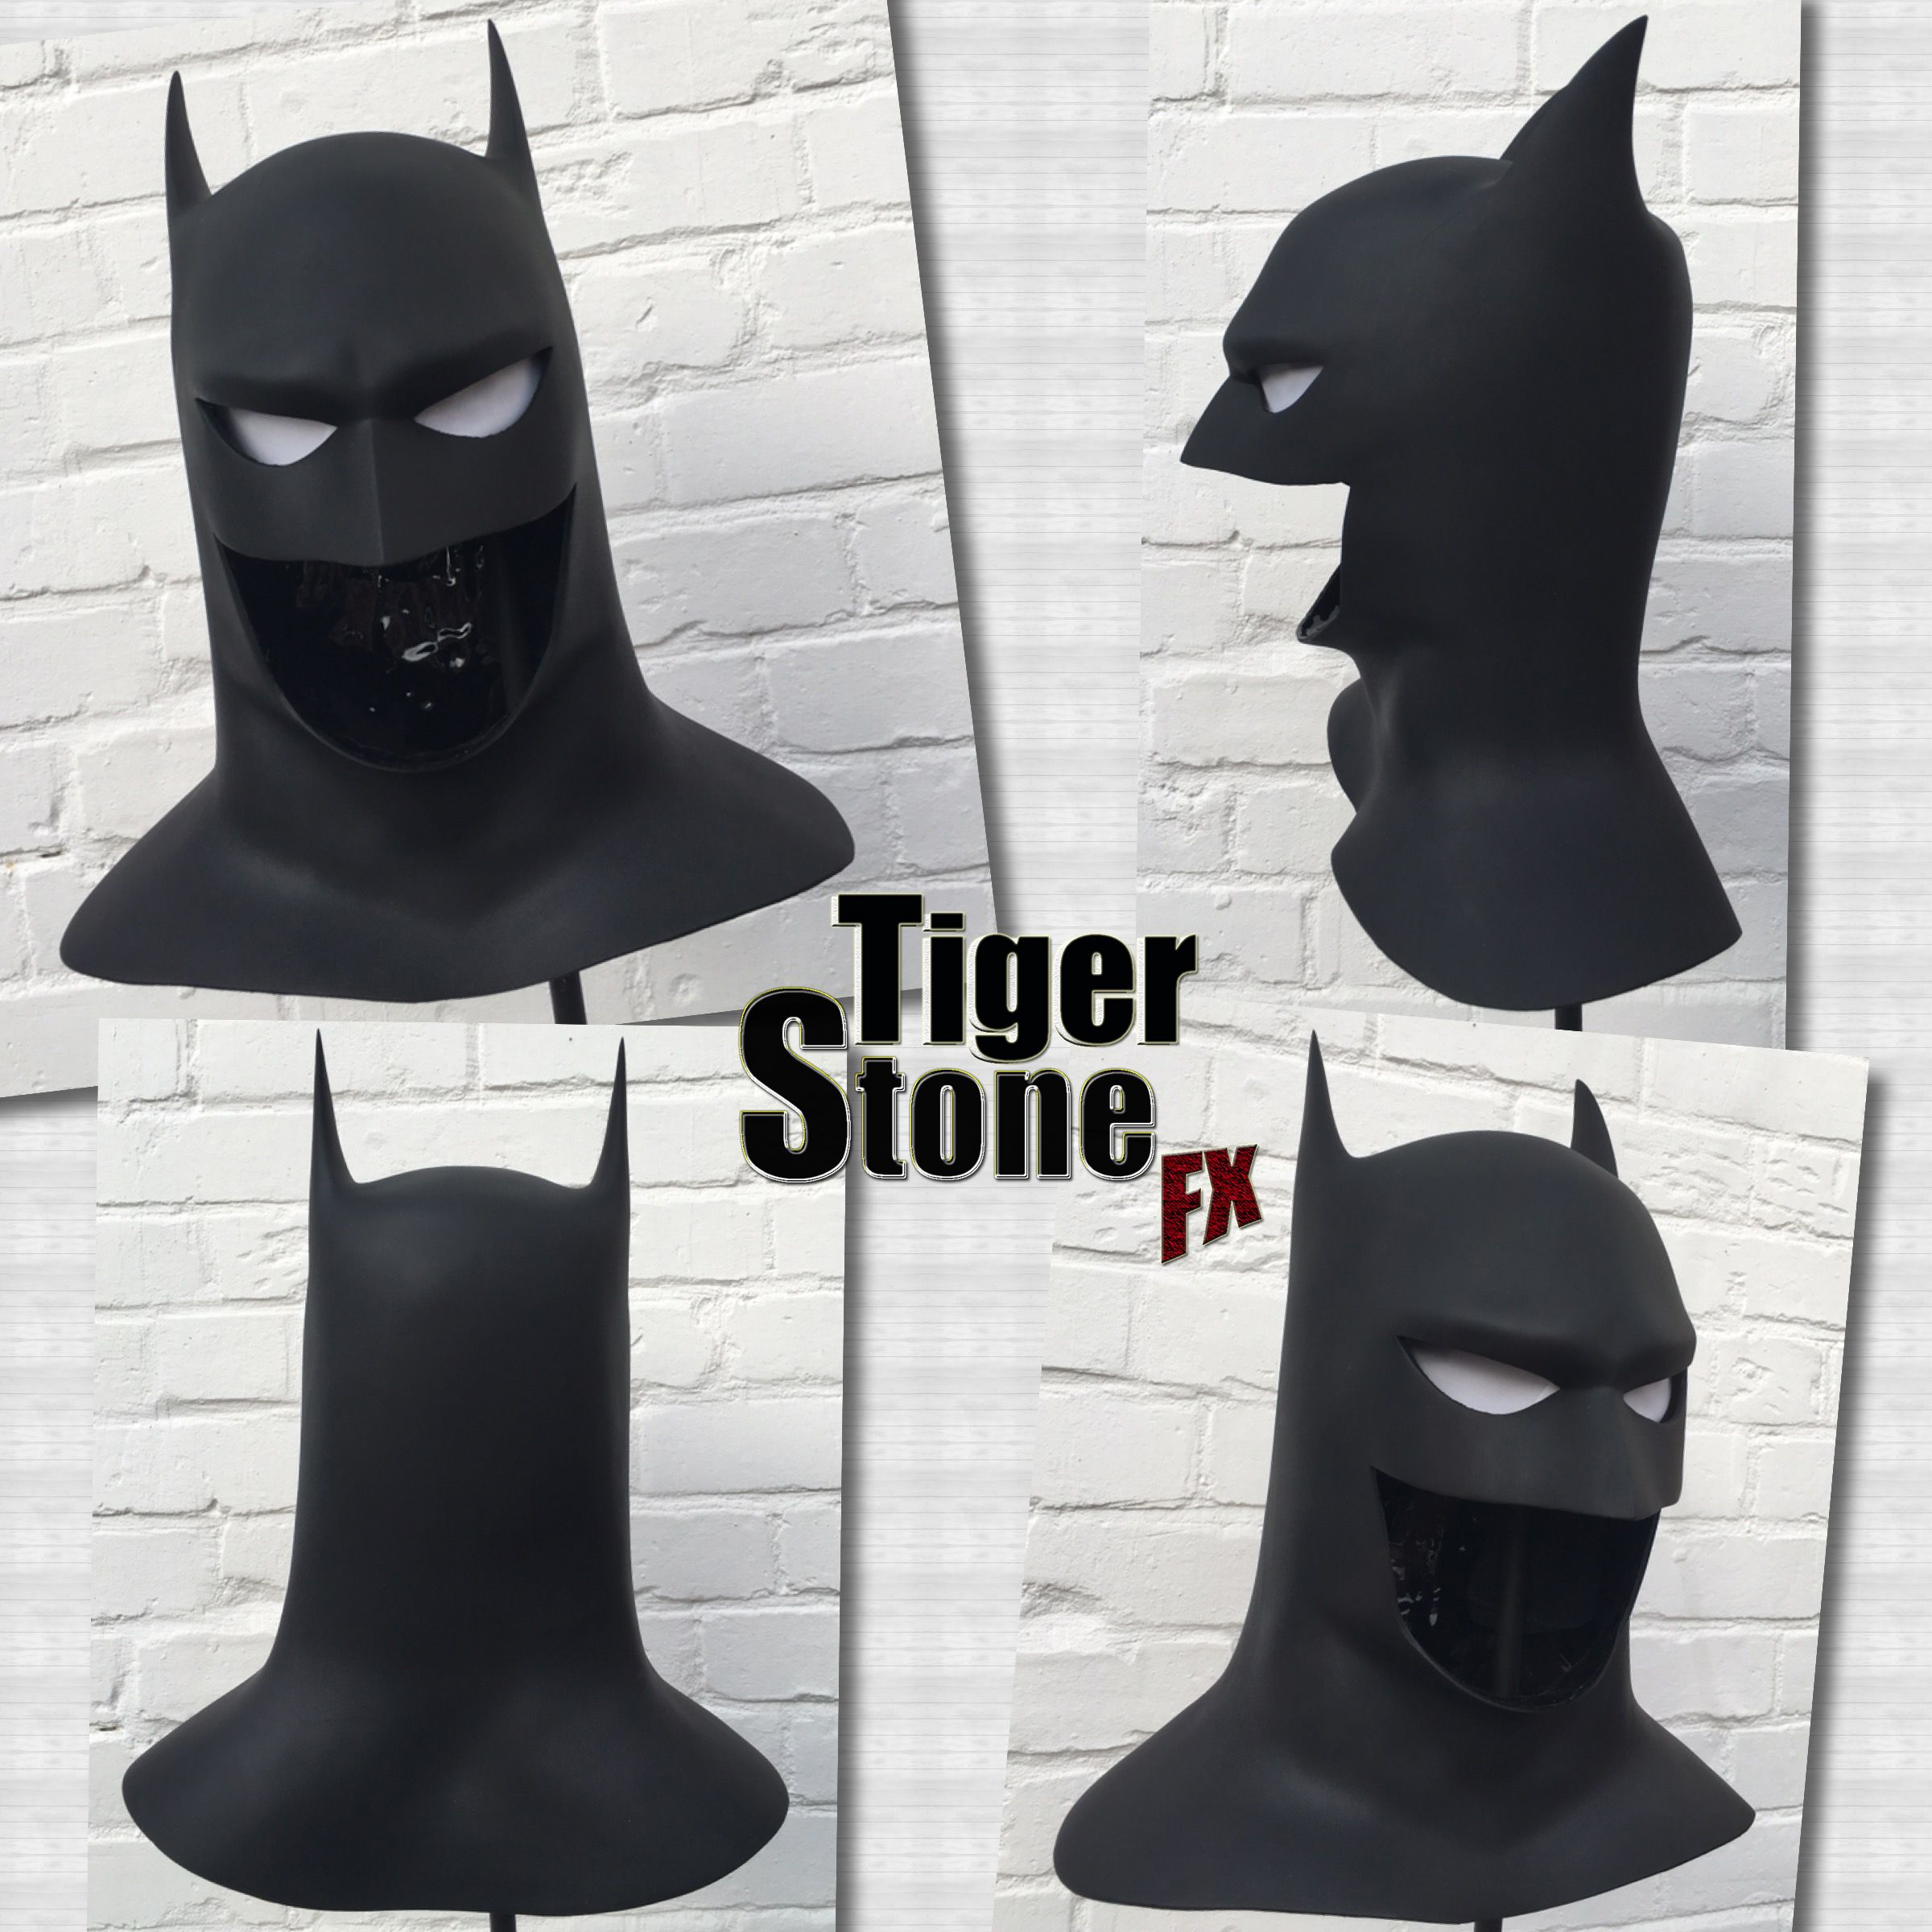 we took some new pics of our btas cowl fits up to a 24 head